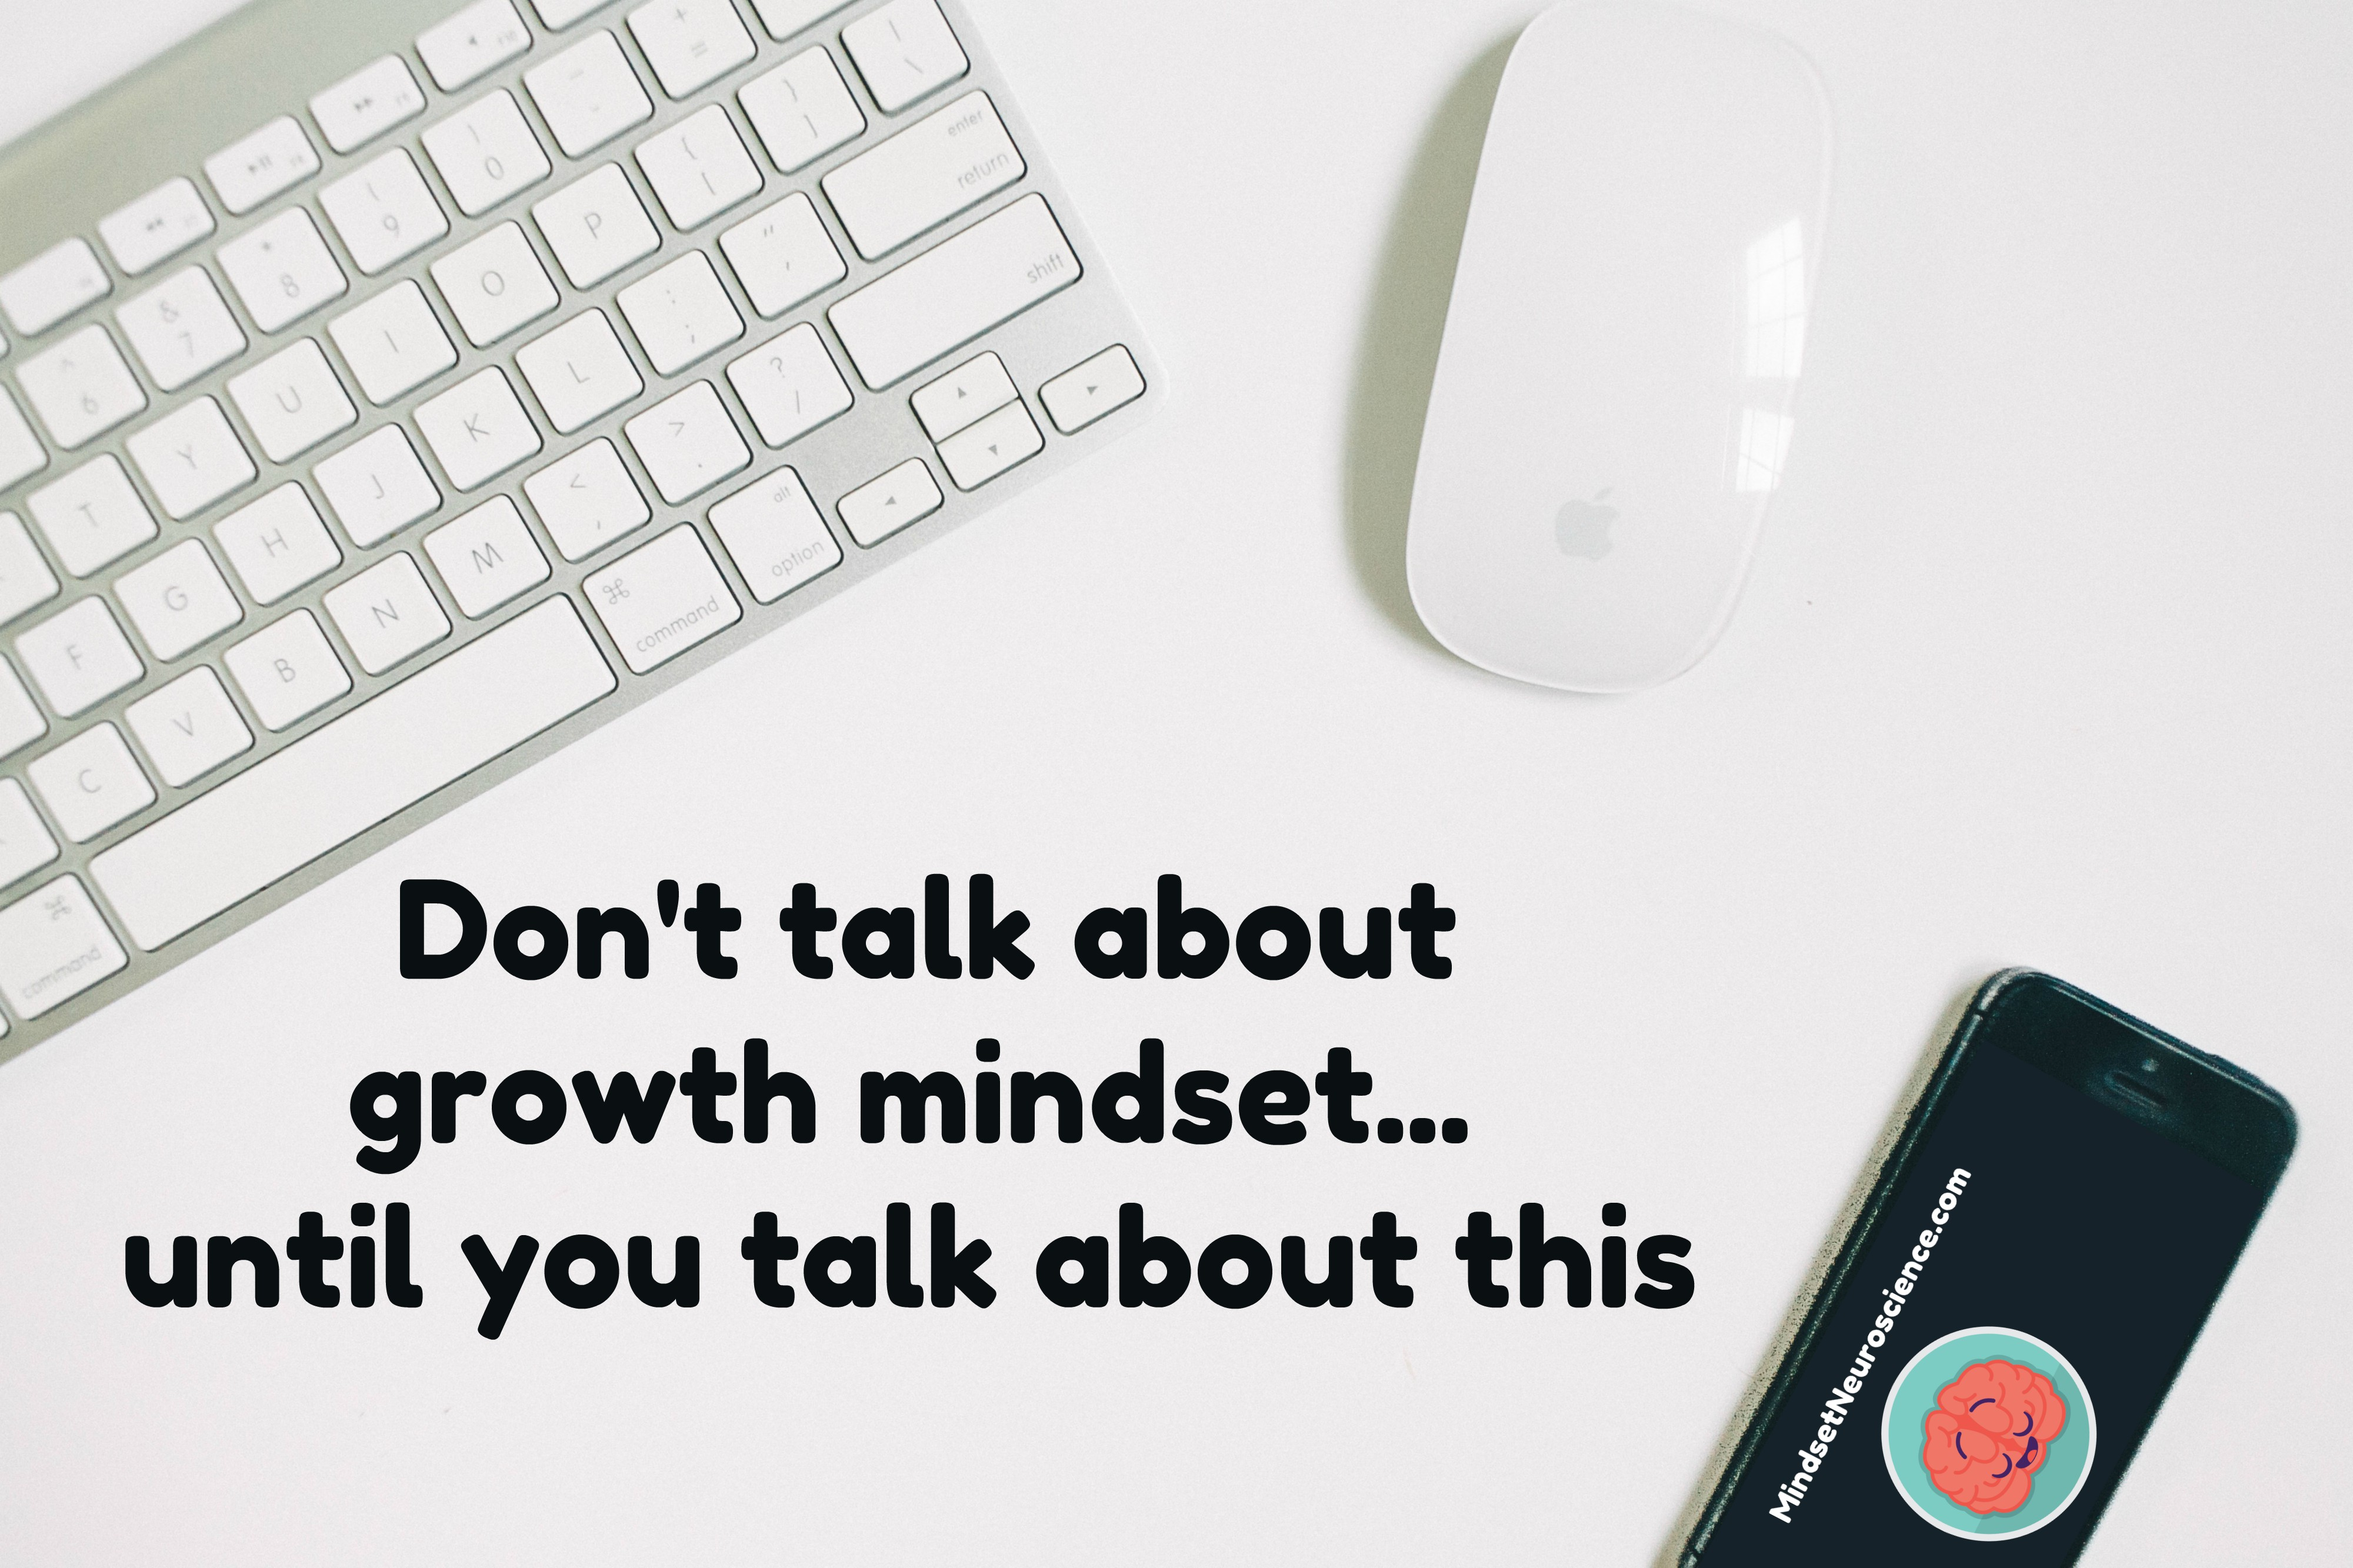 don't talk about growth mindset until you talk about this